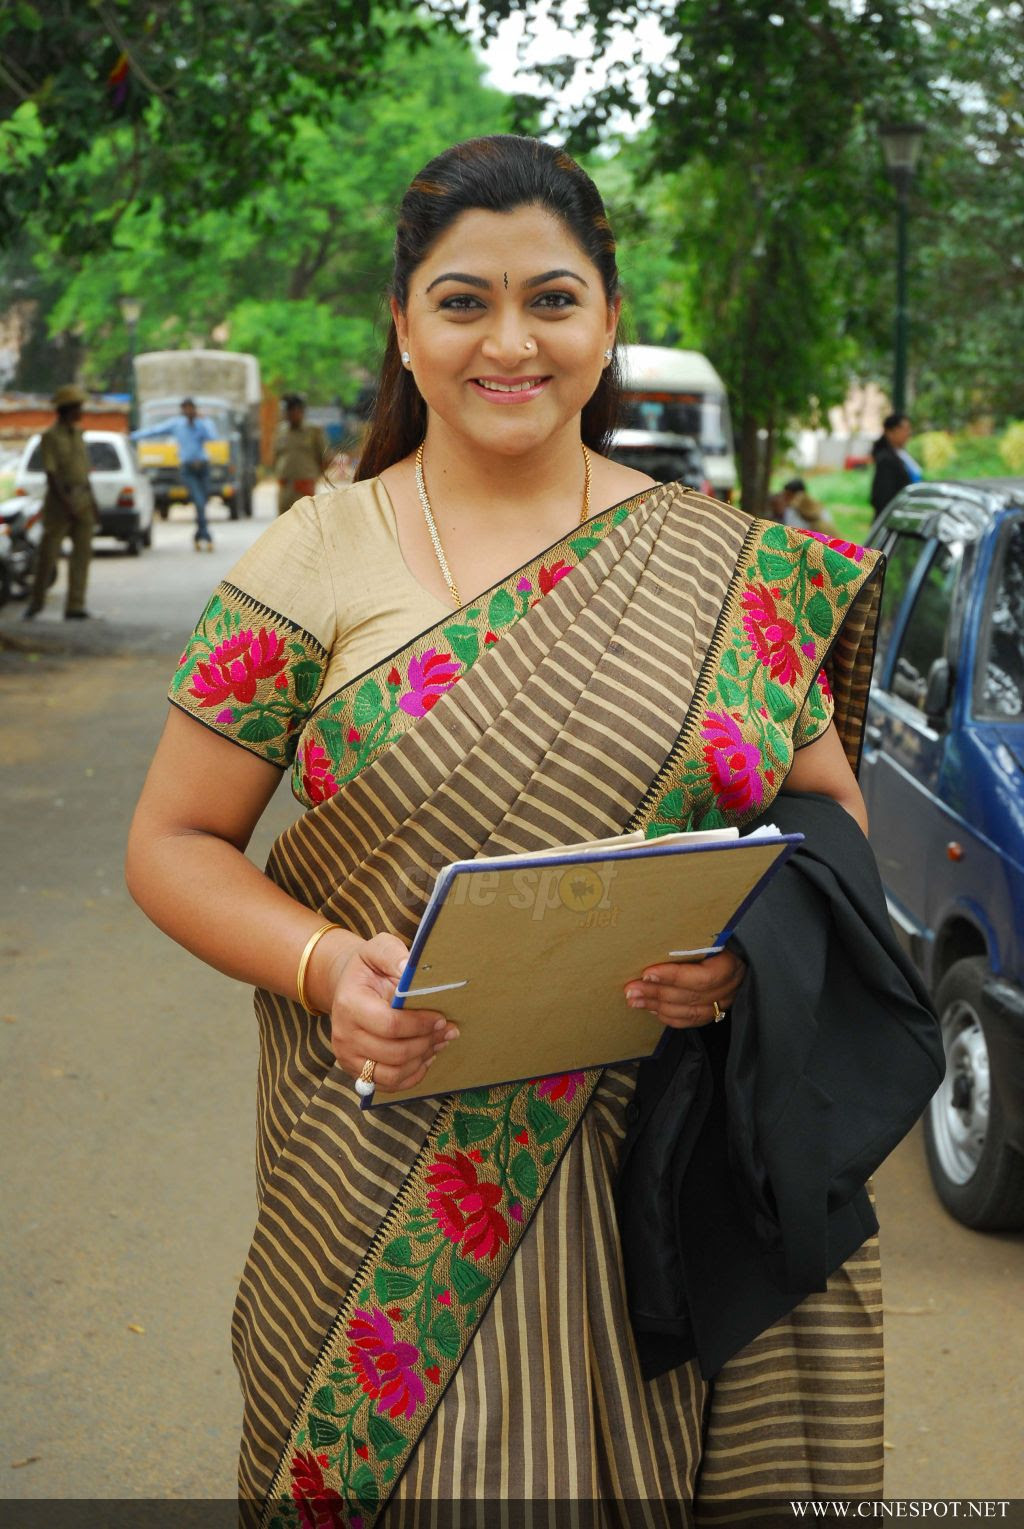 Kushboo Tamil Hot Beautiful nakhat khan stage name khushboo indian film actress,producer